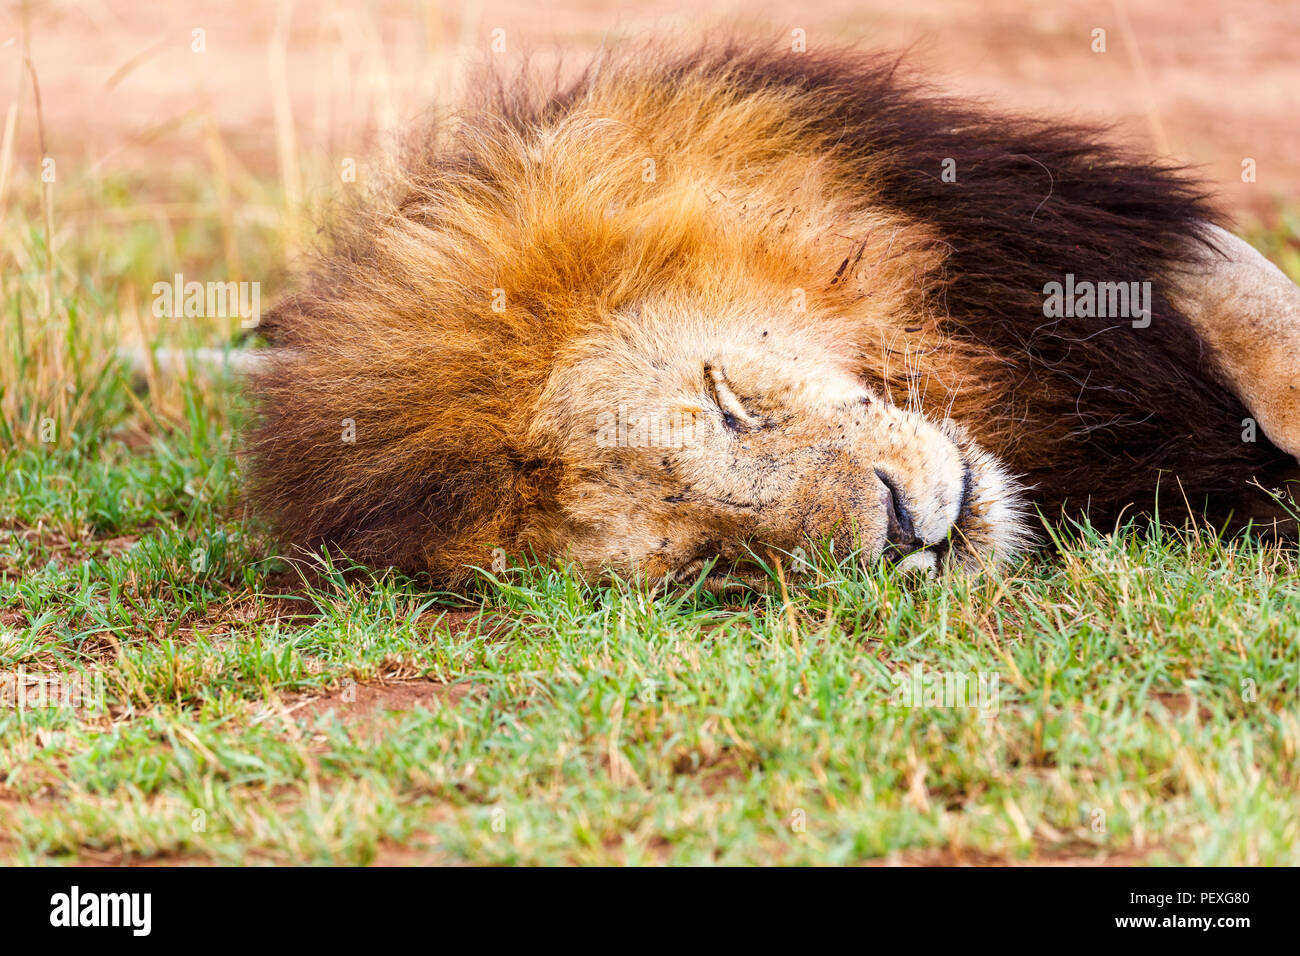 Close up view of the head of a dozing adult male Mara lion (Panthera leo) peacefully sleeping on grass in the daytime in the Masai Mara, Kenya - Stock Image